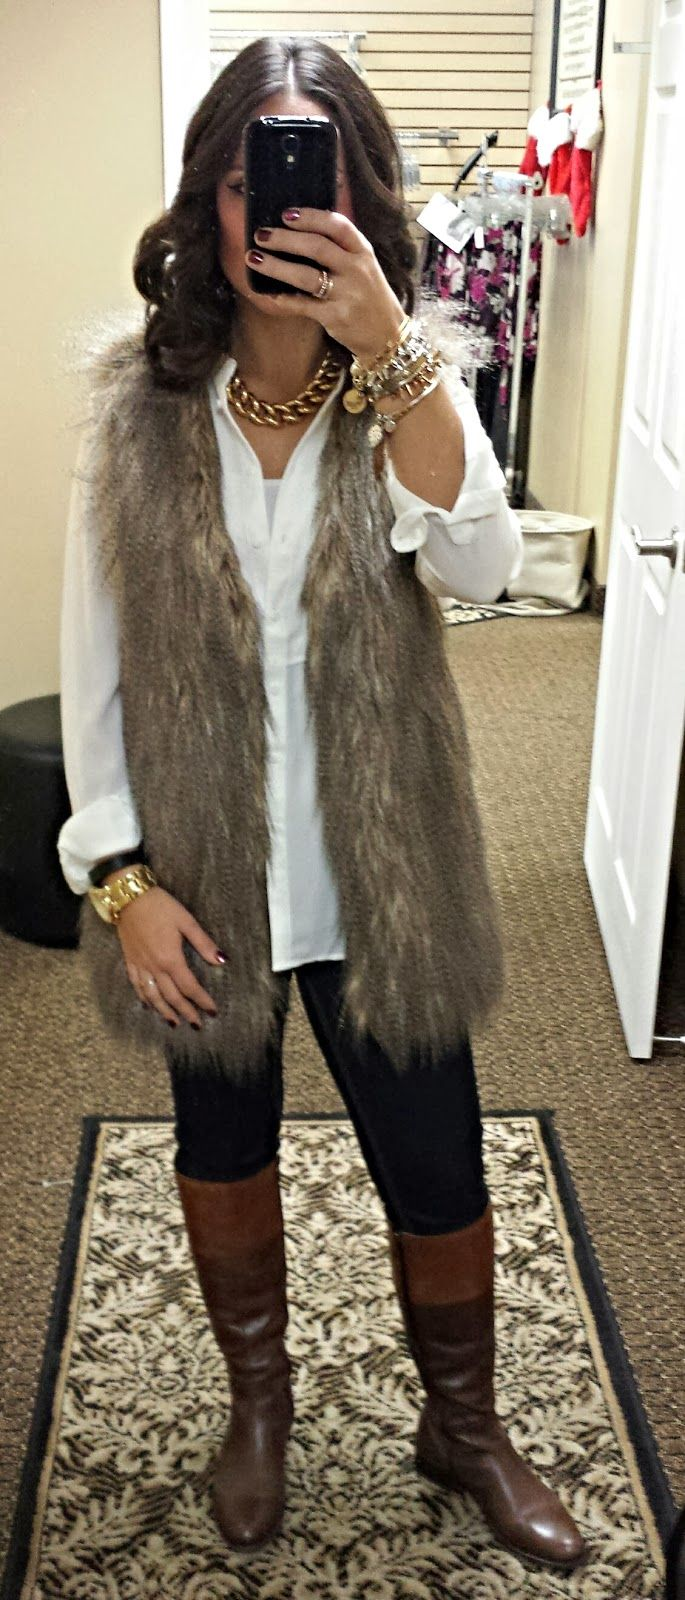 It's all about the Jewels: Fur Vest + Riding Boots